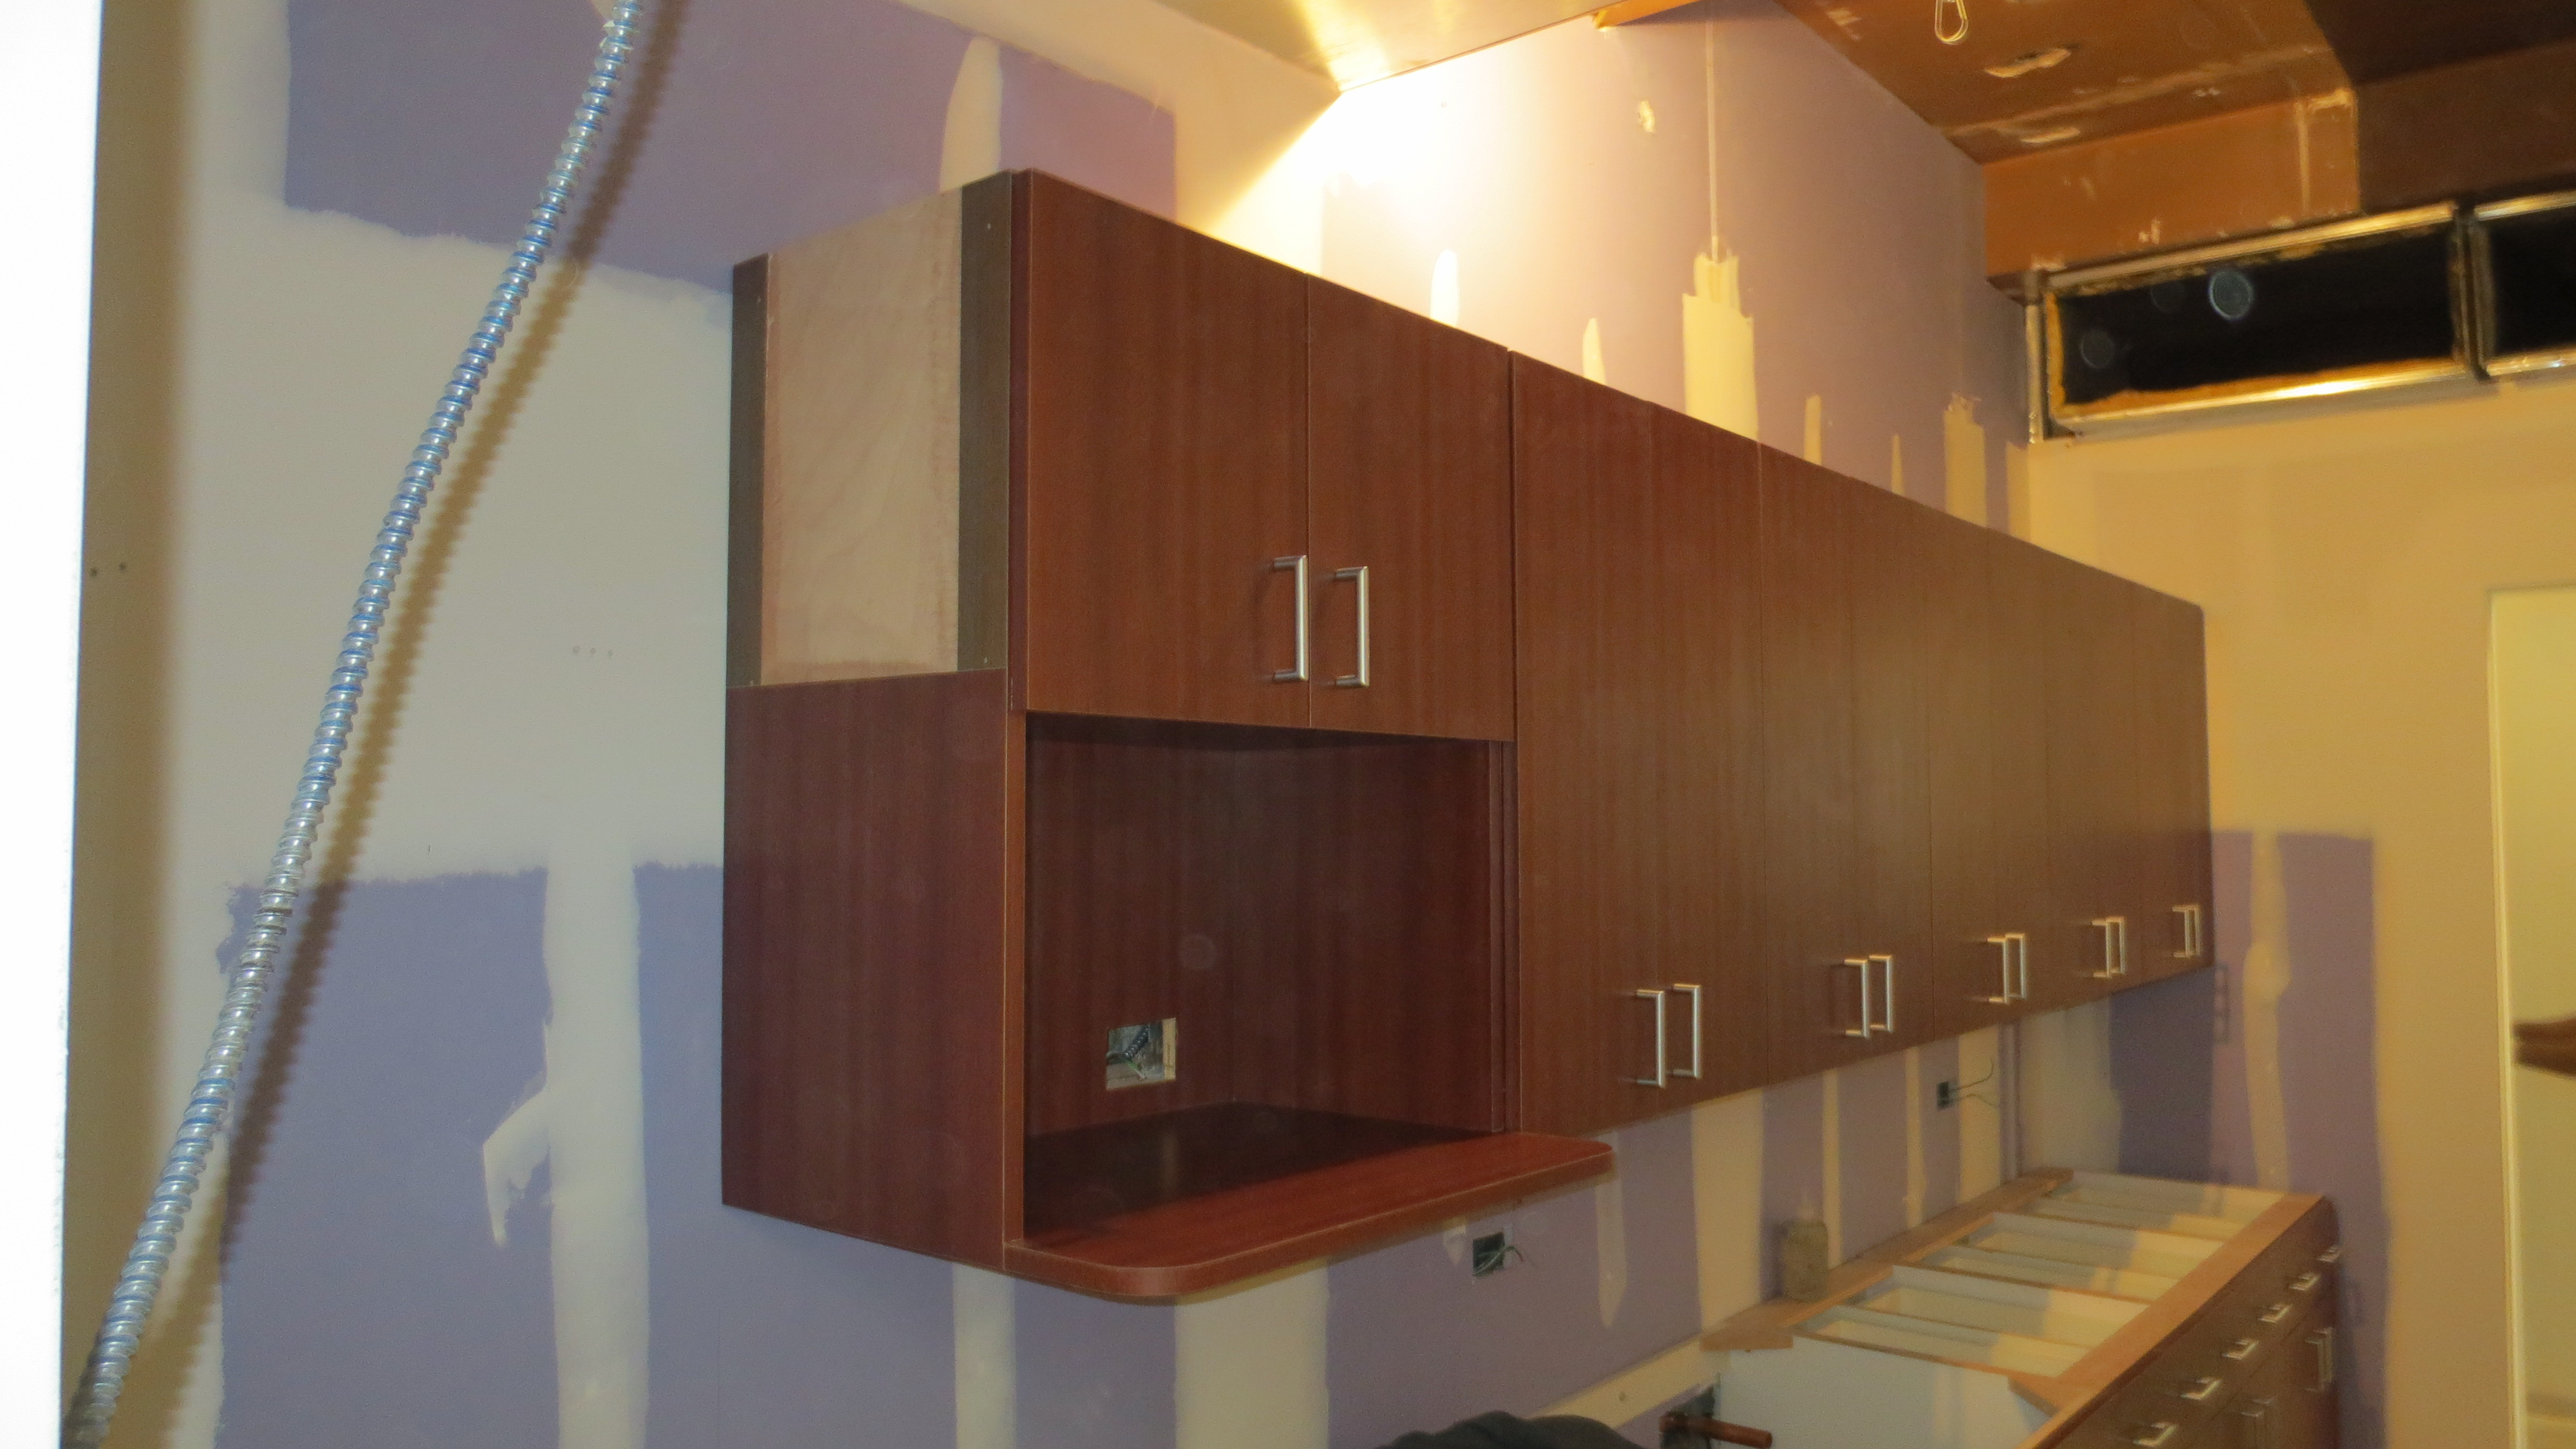 Plam Cabinets Casework Plam P Lam P Lam Cabinets Cabinetry